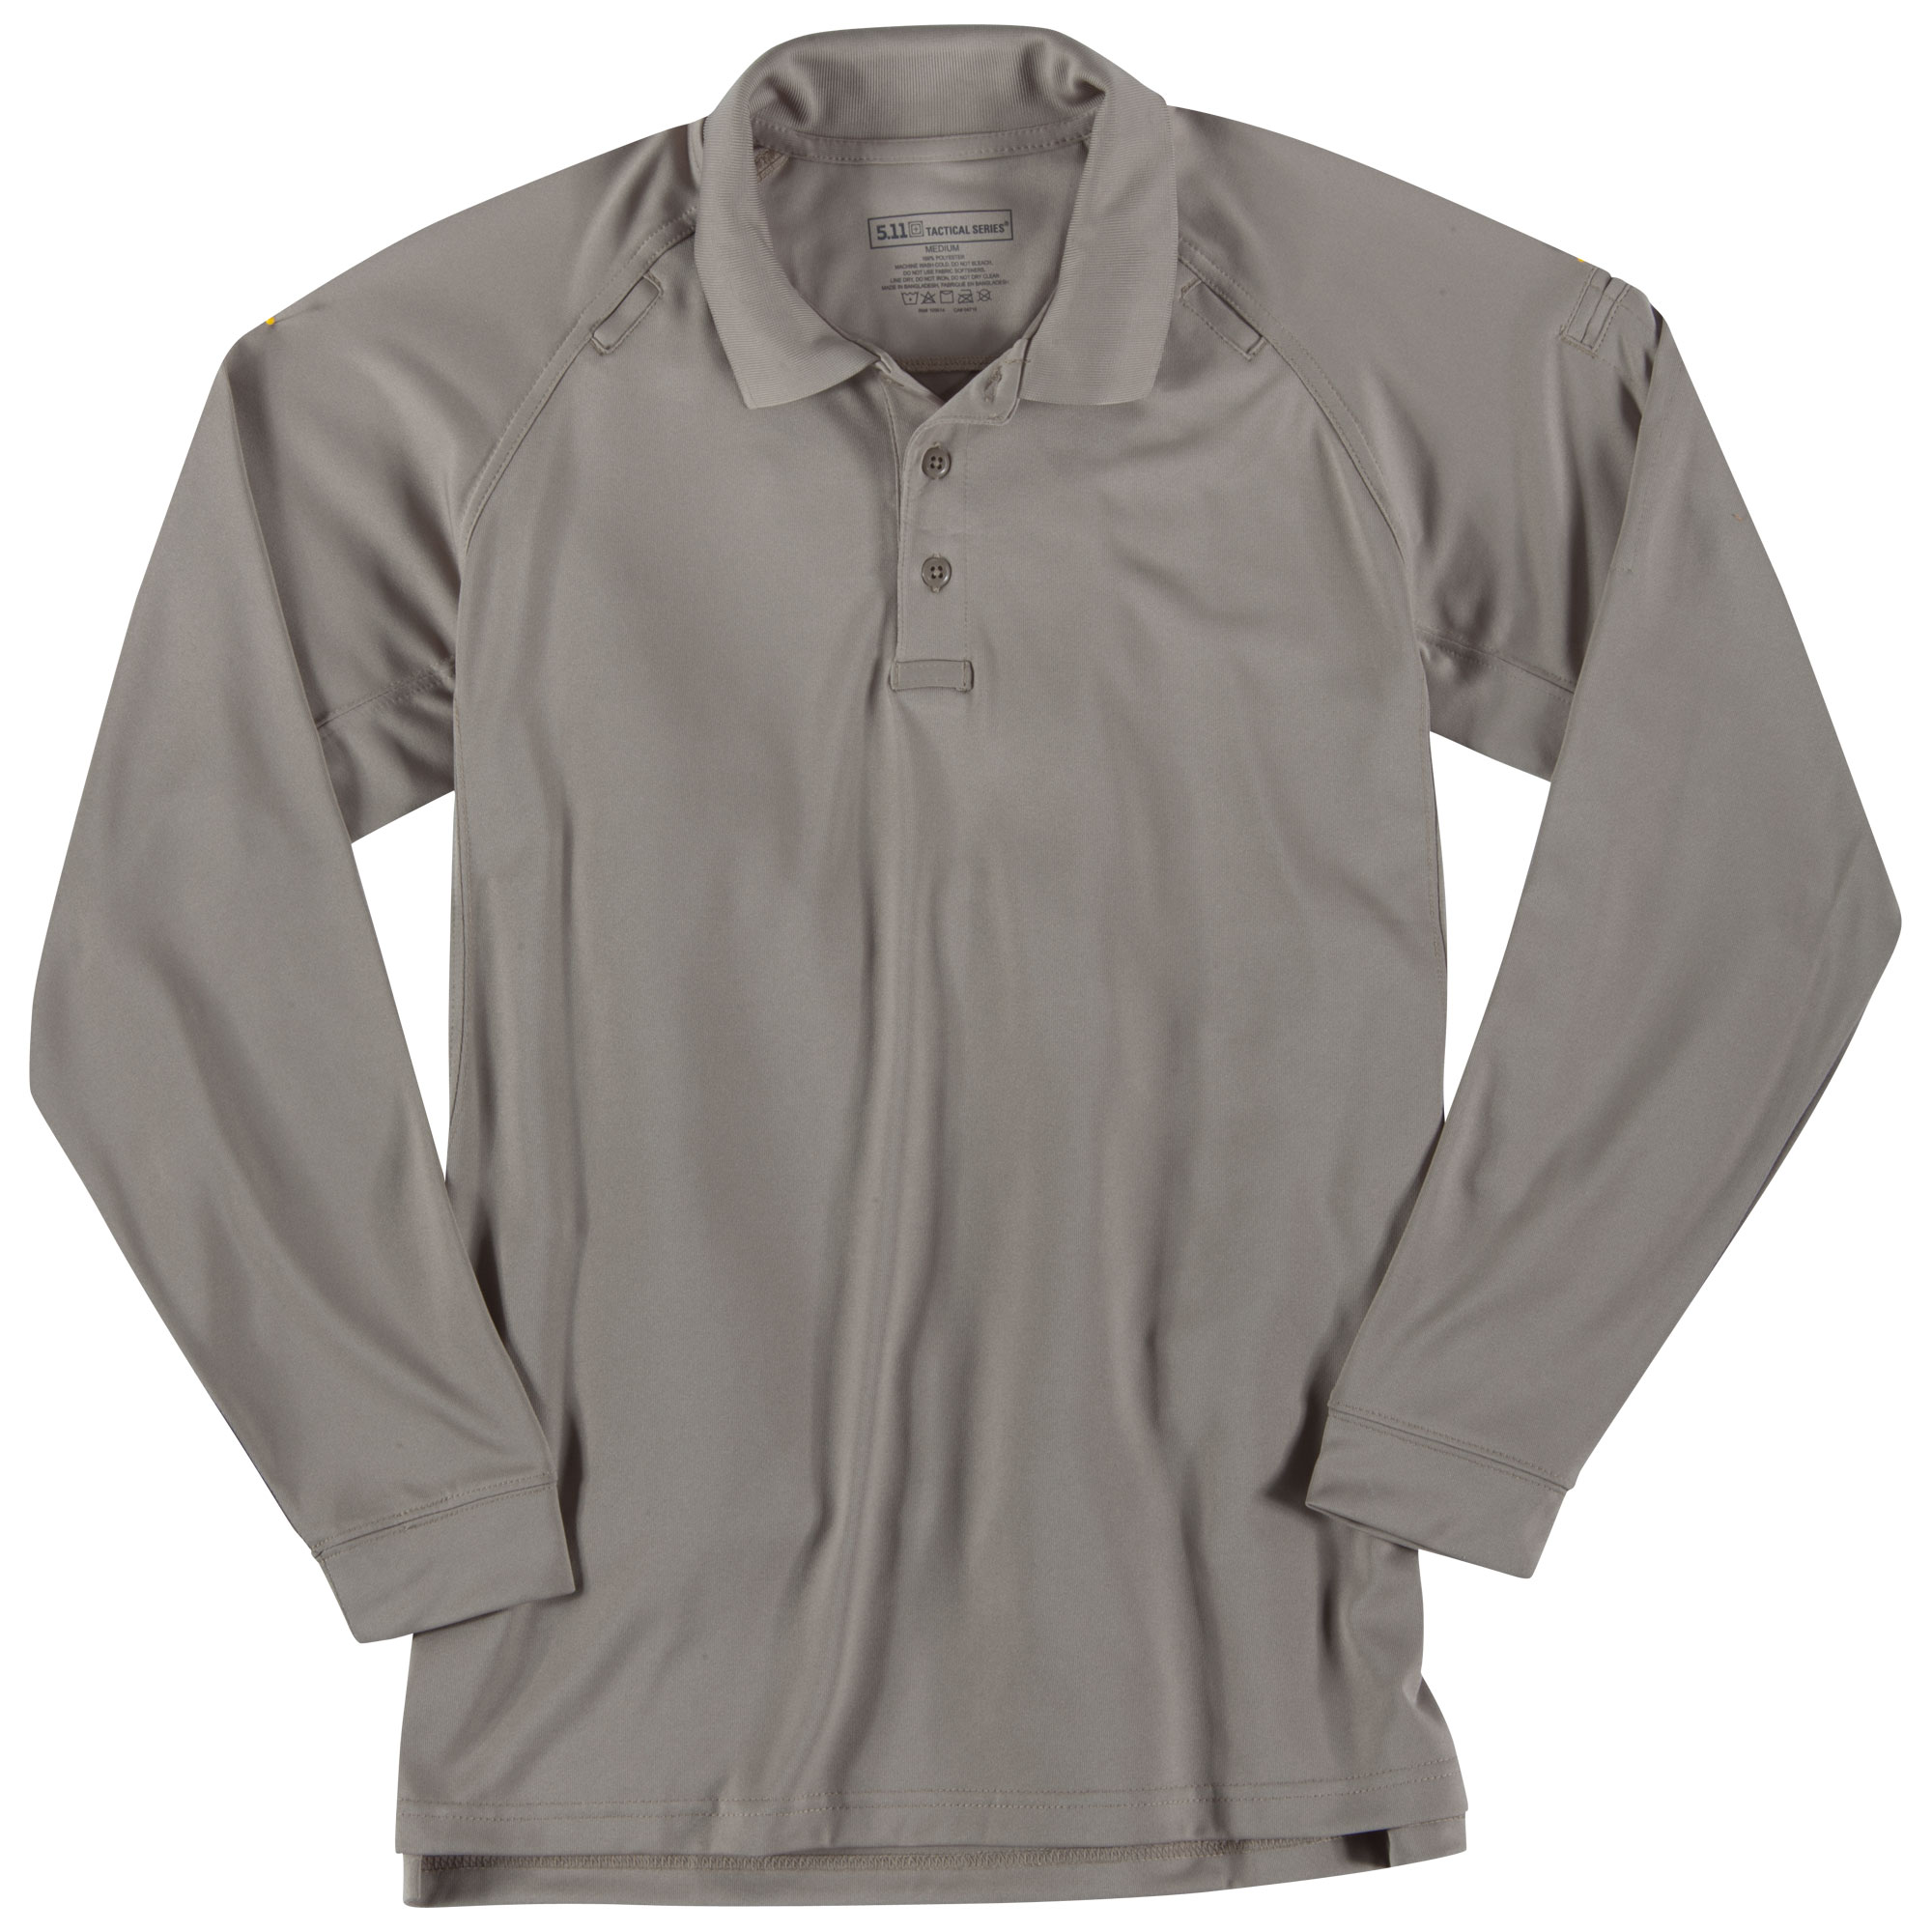 Buy Performance Long Sleeve Polo 511 Tactical Online At Best